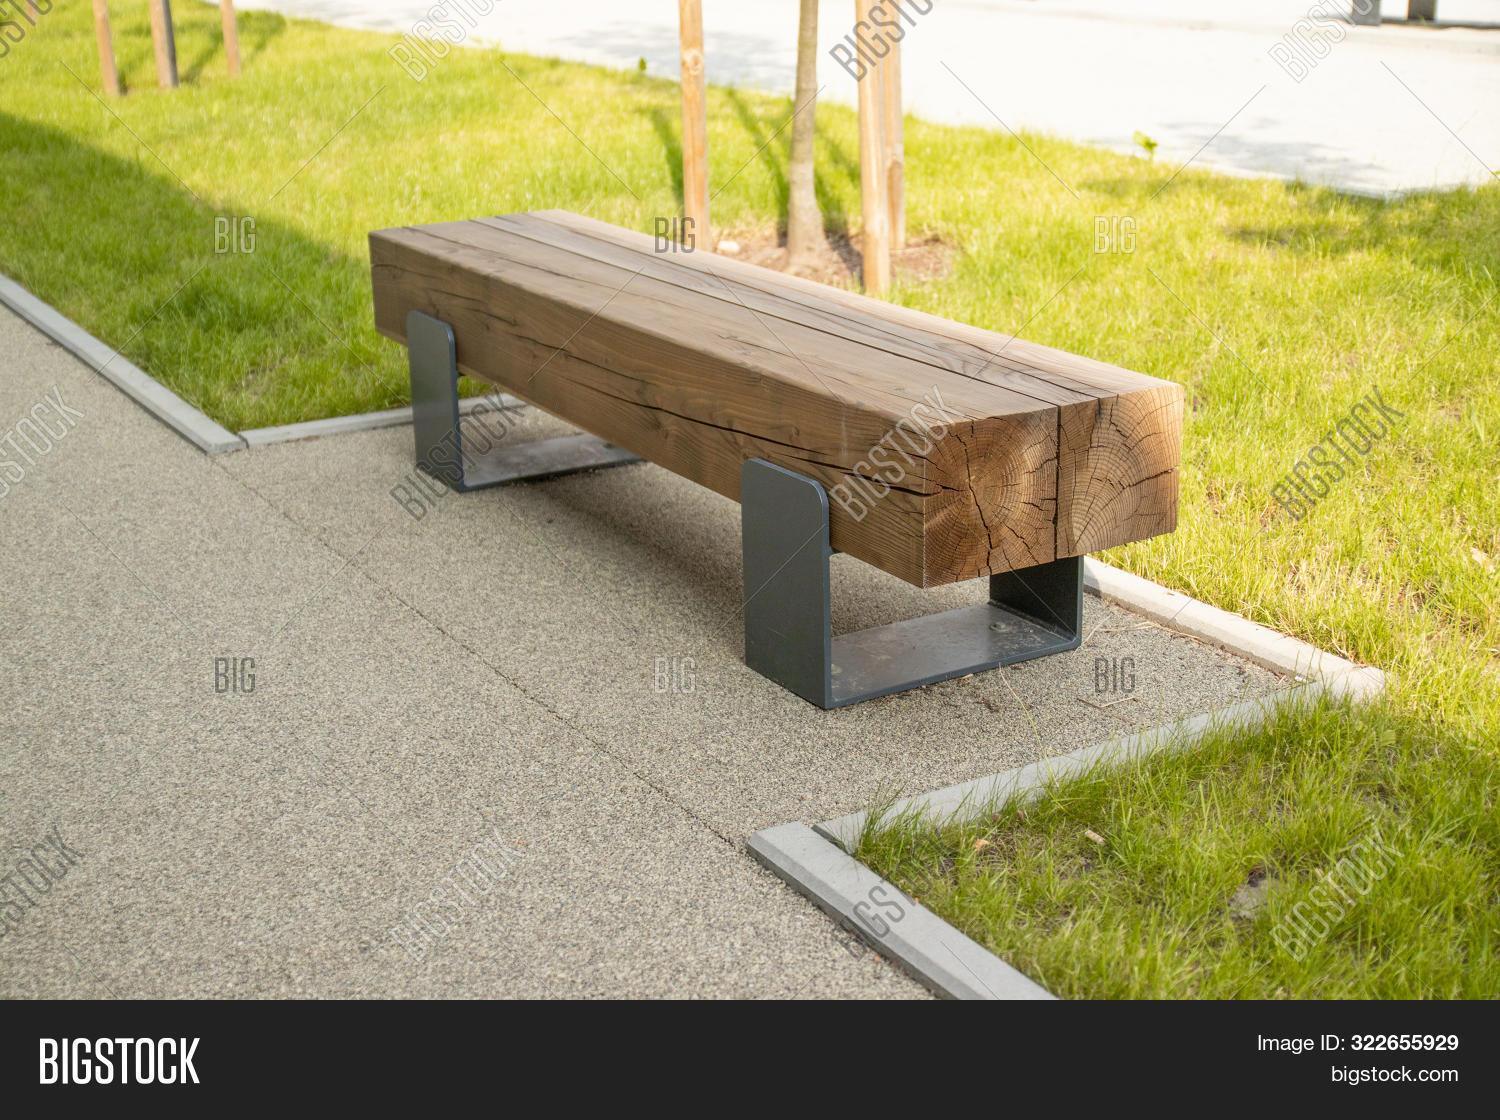 Magnificent Street Wooden Bench Image Photo Free Trial Bigstock Pdpeps Interior Chair Design Pdpepsorg